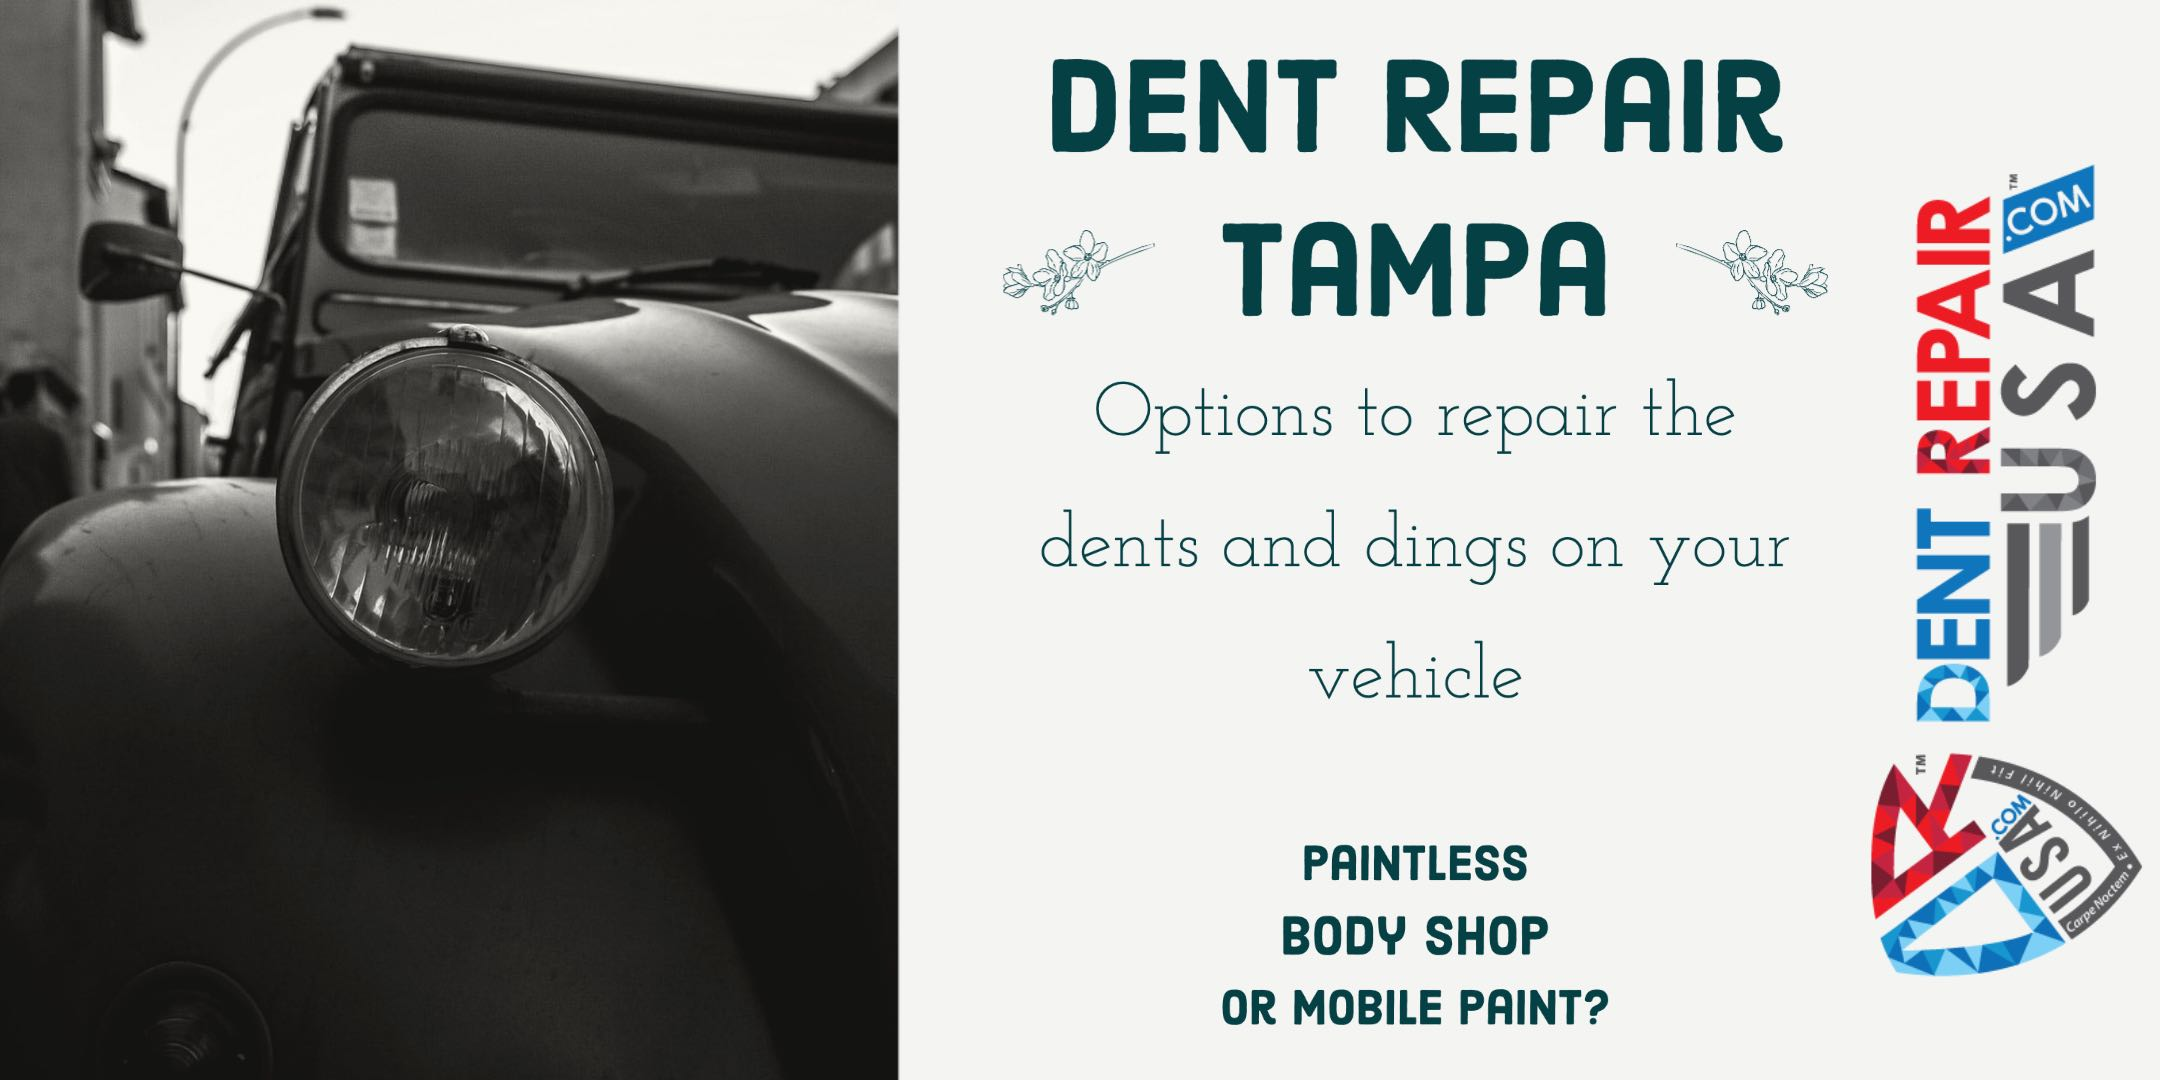 Dent Repair Tampa Florida